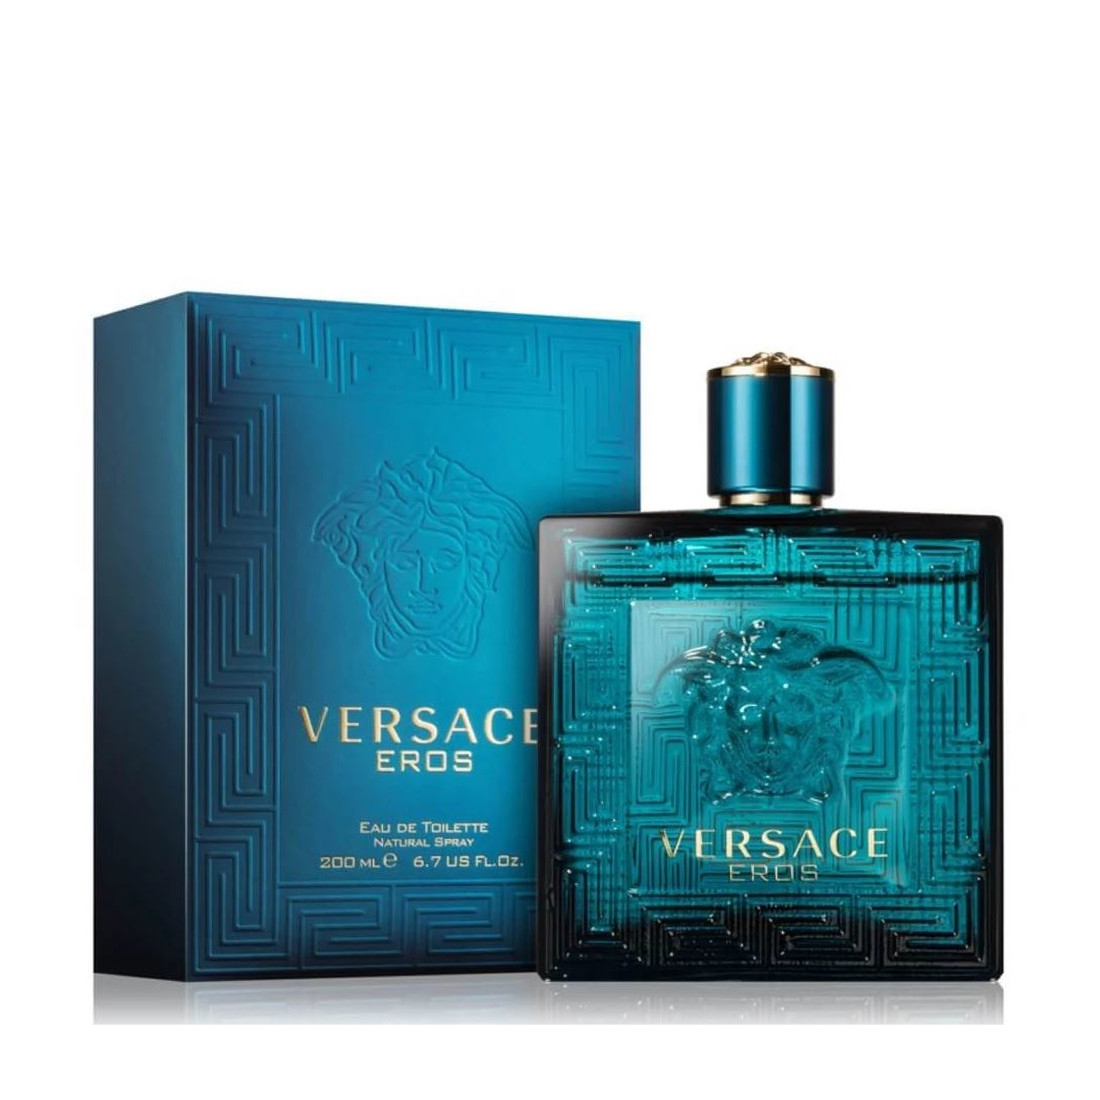 Perfumes For Men & Women for the Best Price in Malaysia